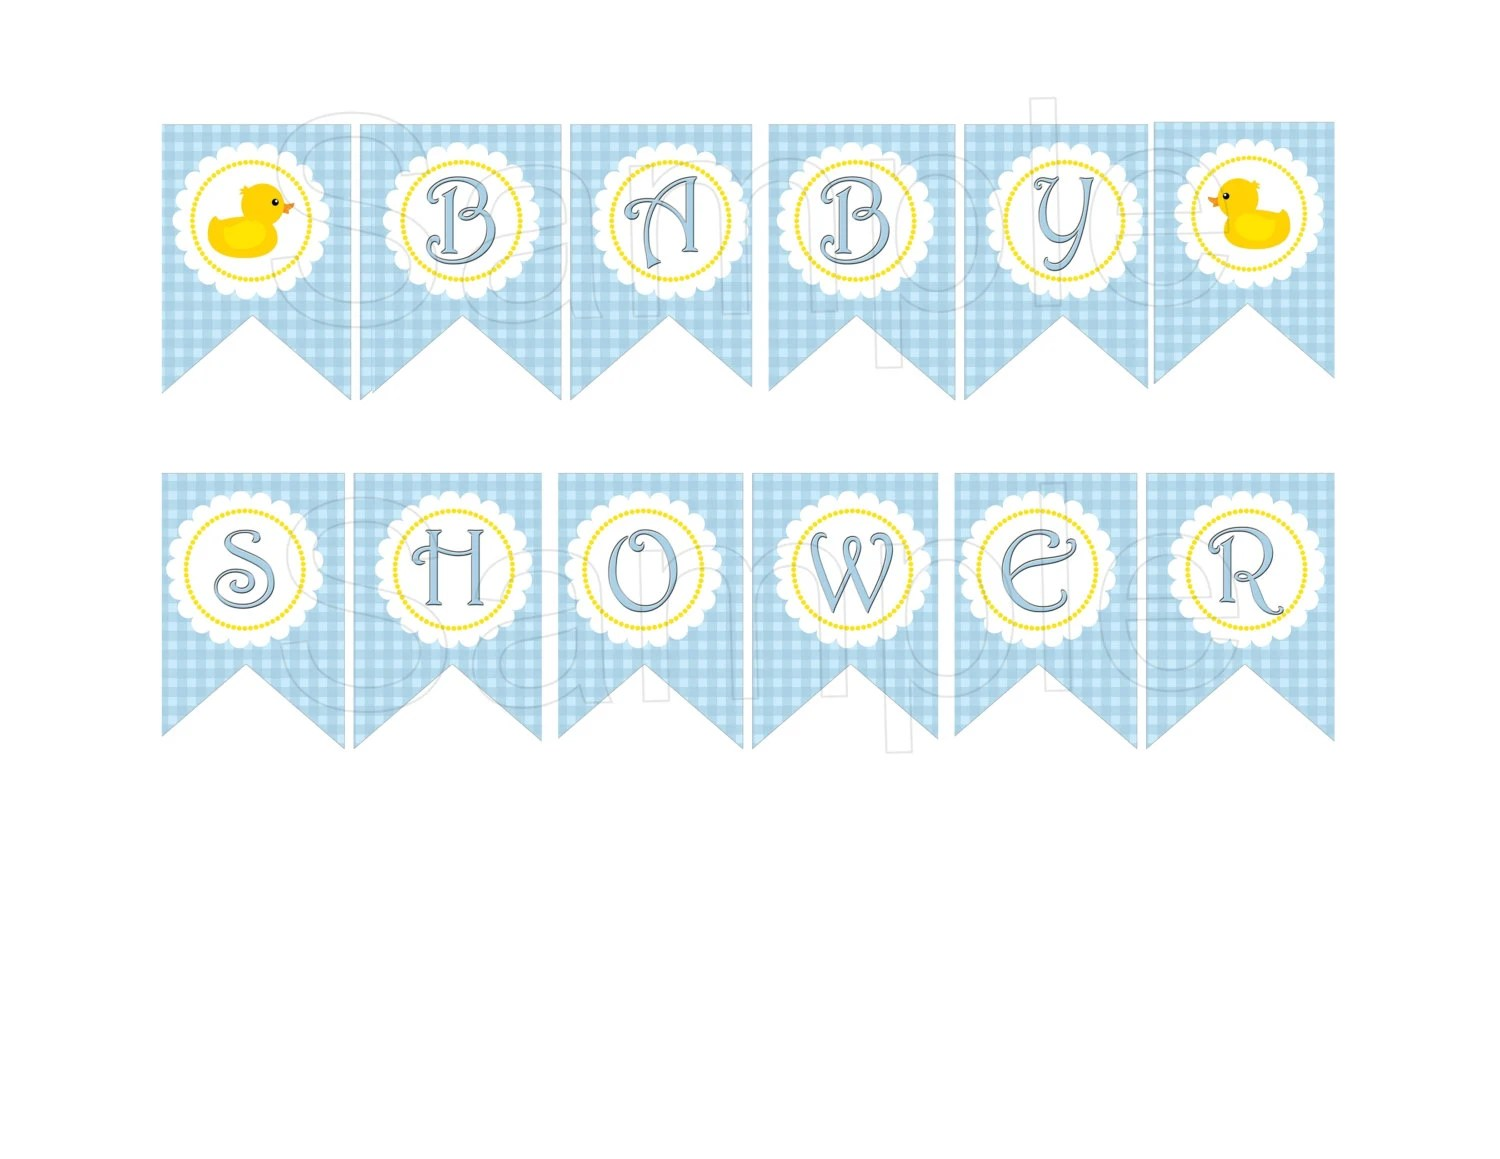 Blue Rubber Duck Baby Shower Diy Printable Banner By Suzz377